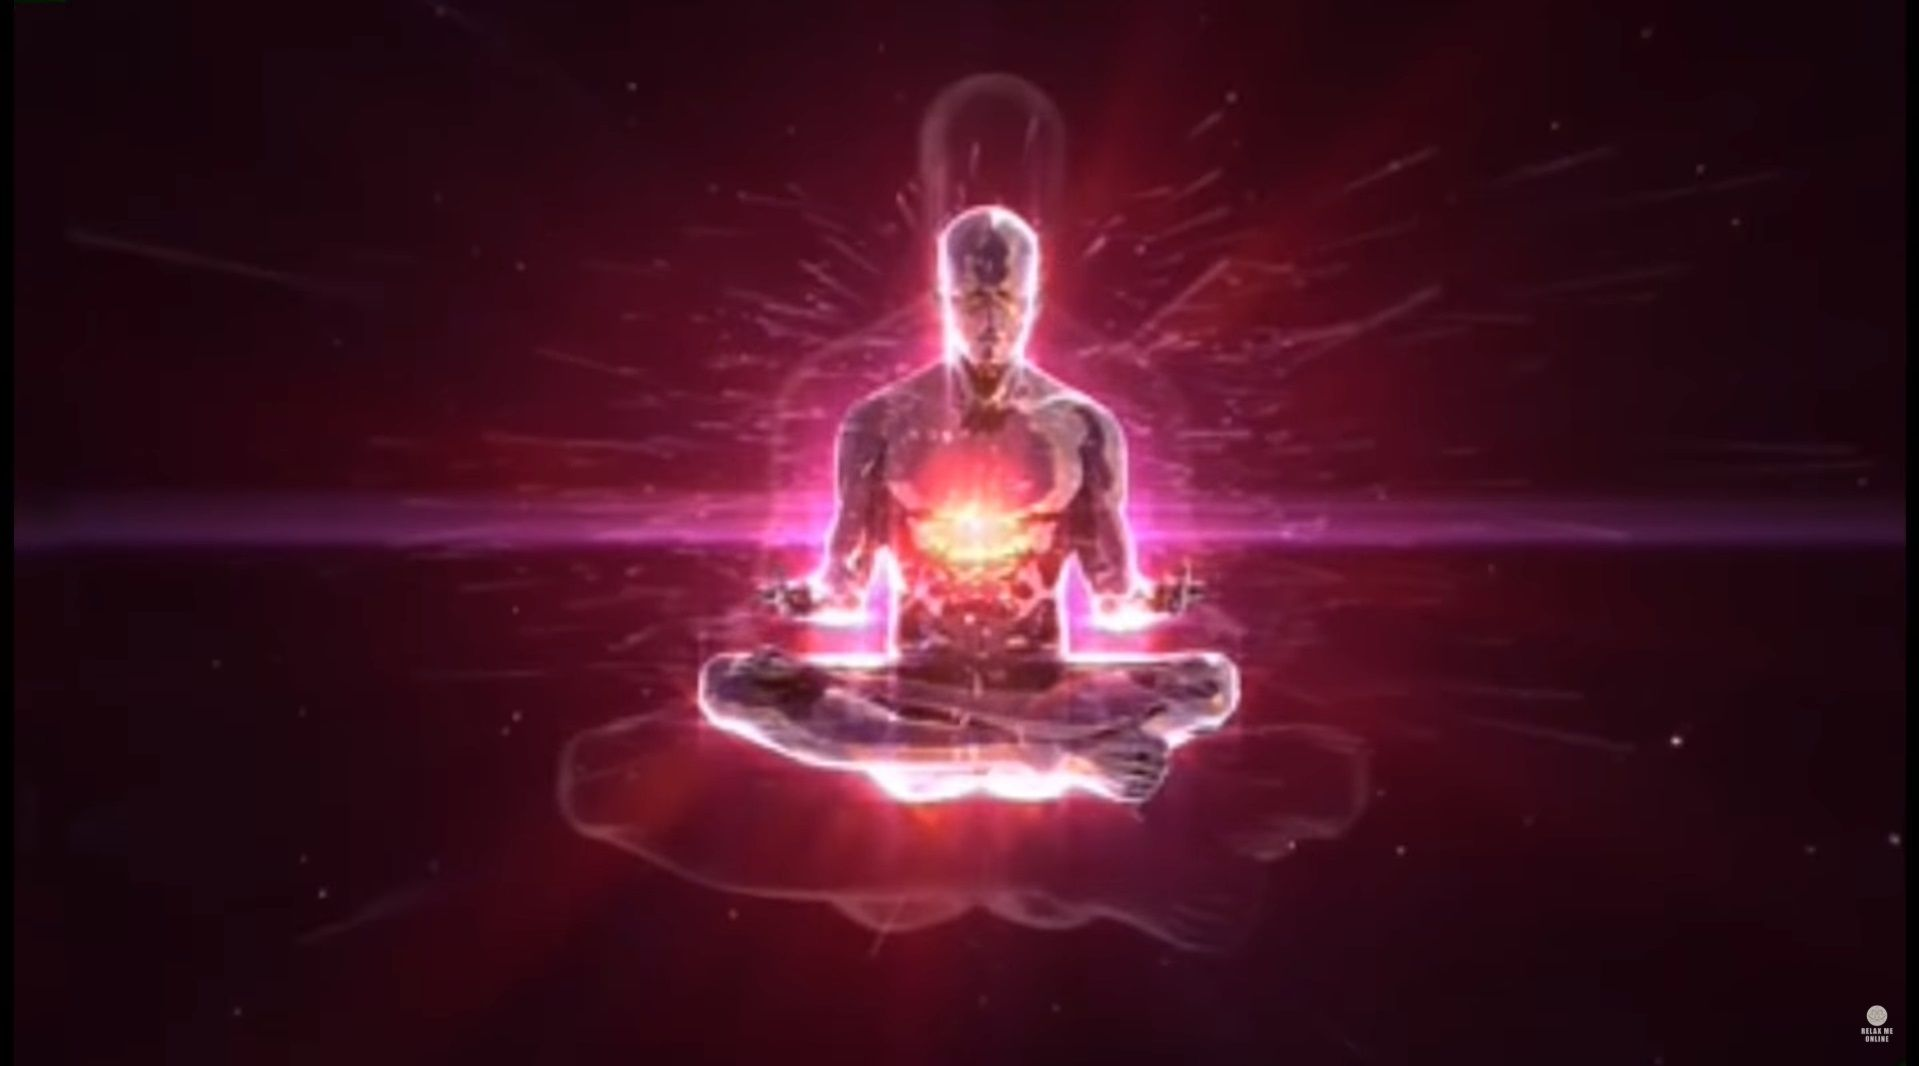 A Guided Healing Meditation To Help Balance Your Seven